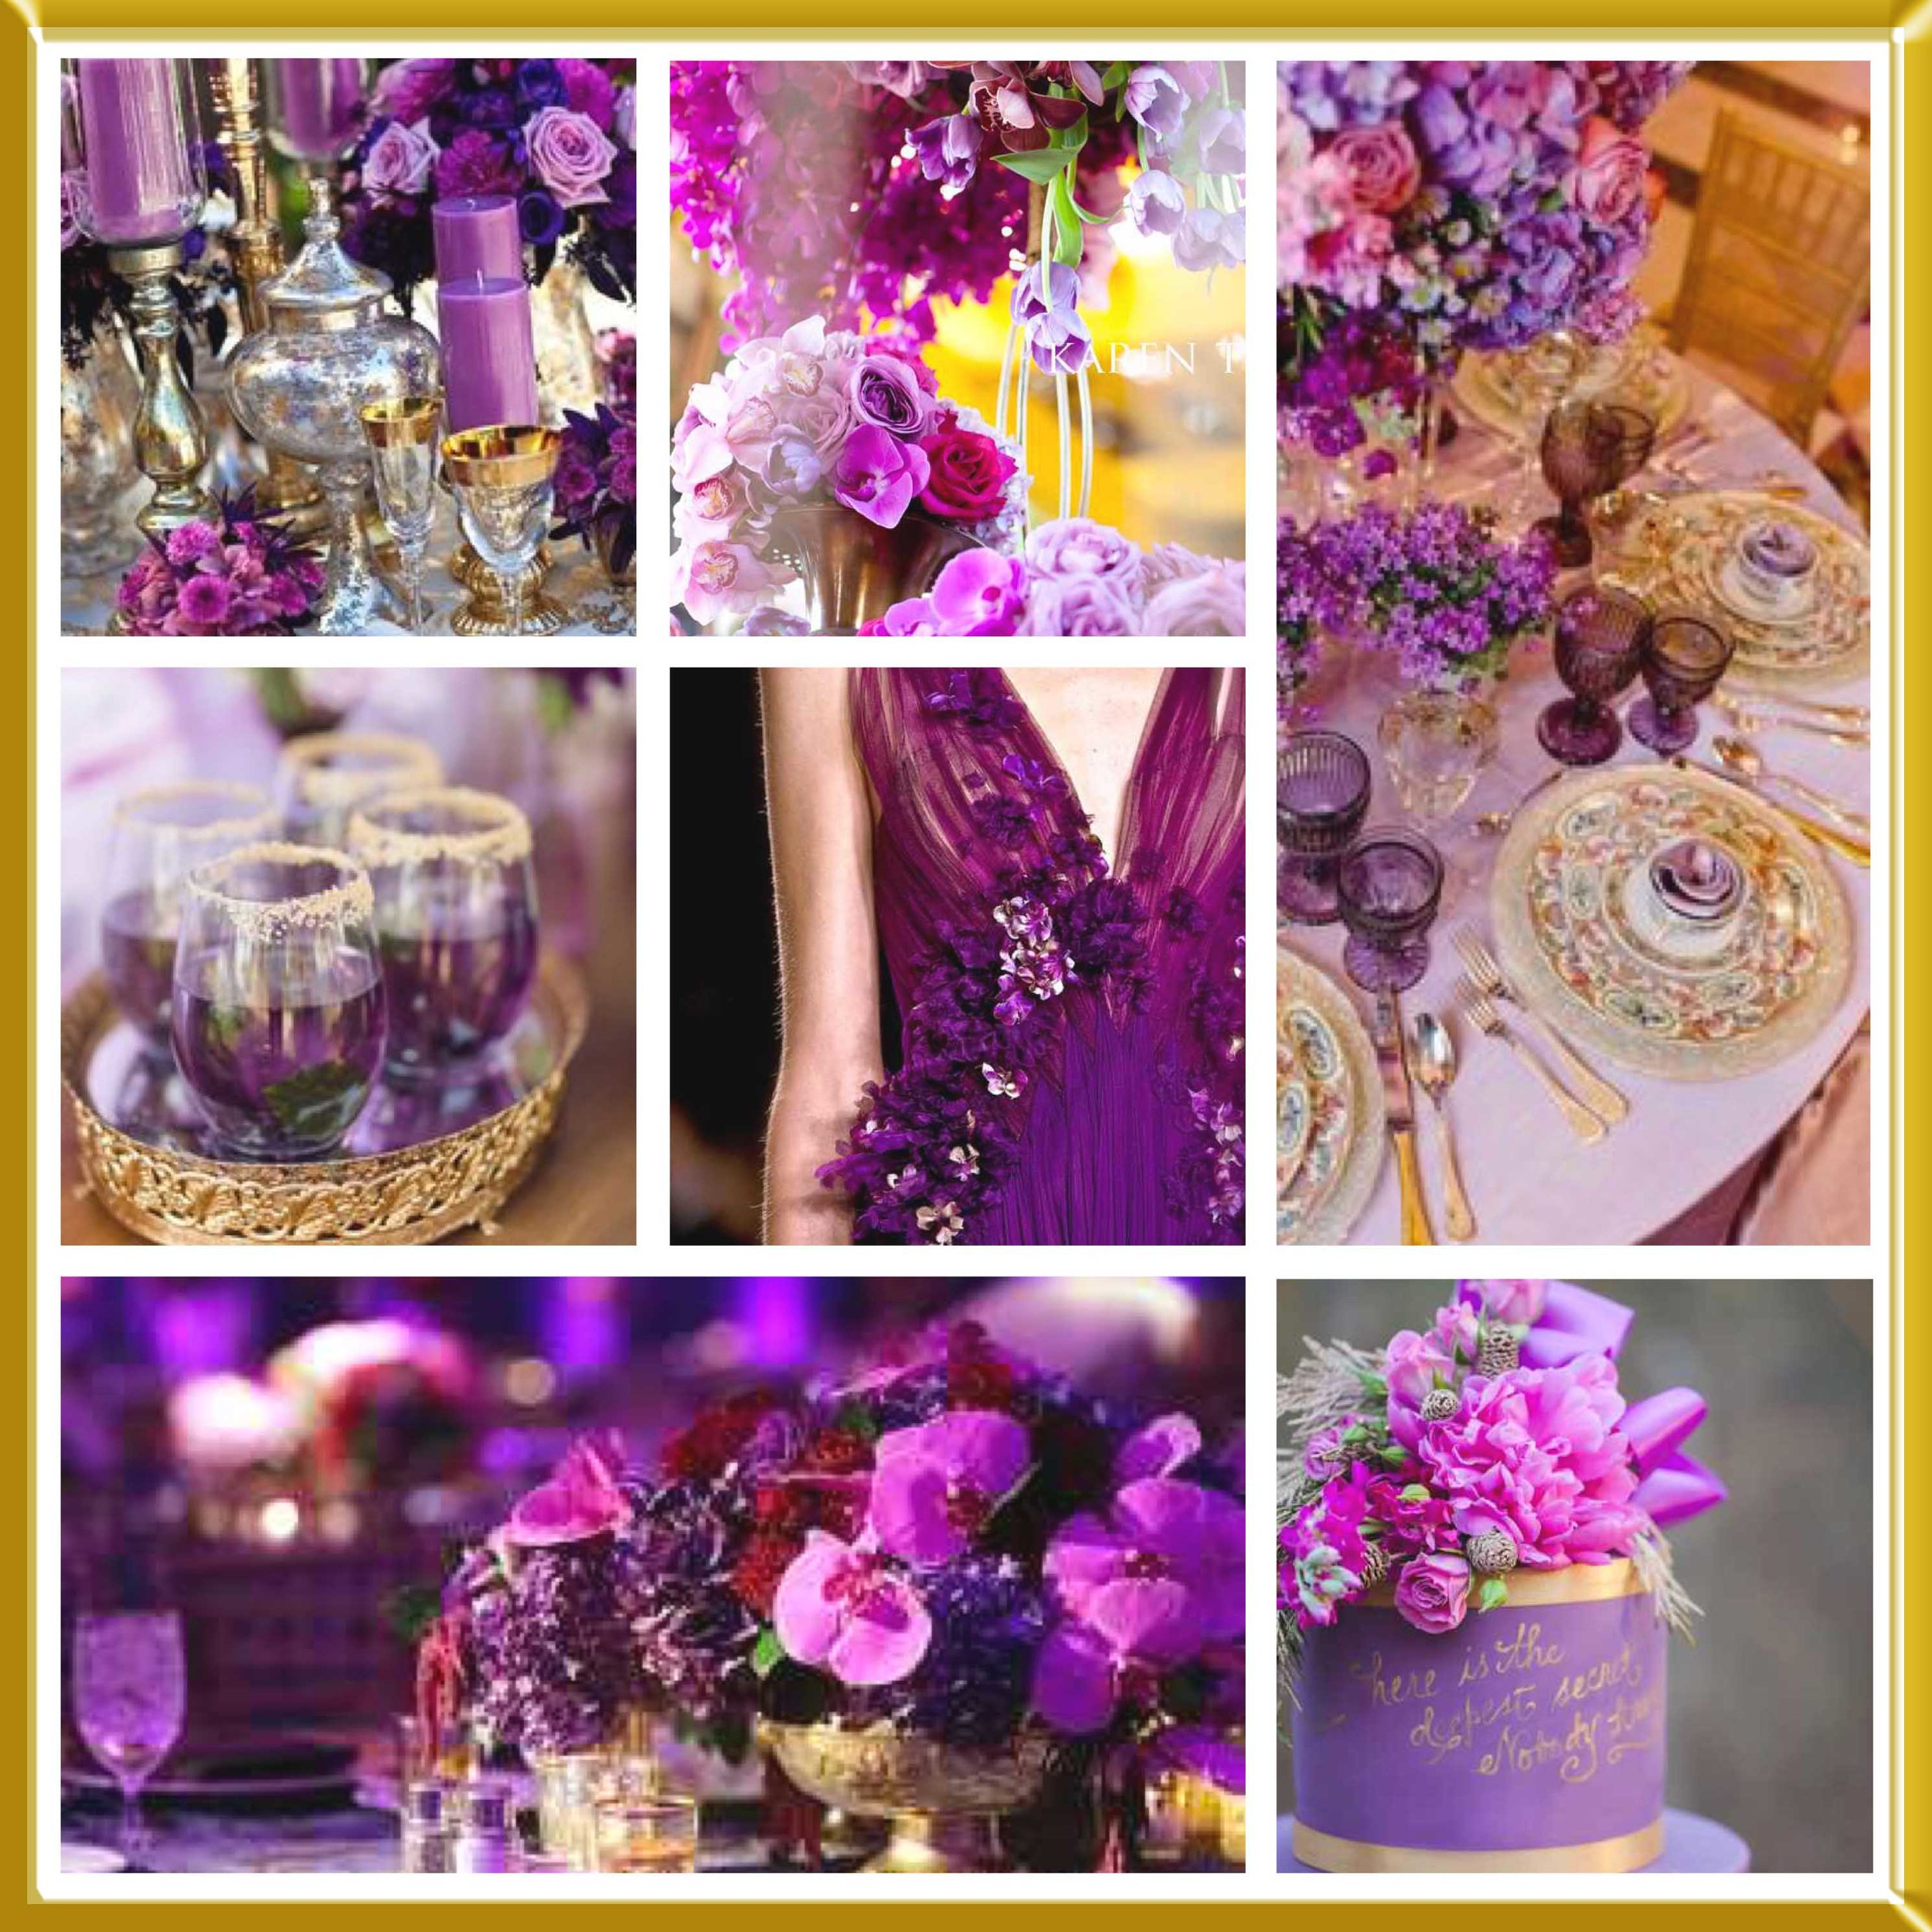 Violet and Gold wedding inspirational board